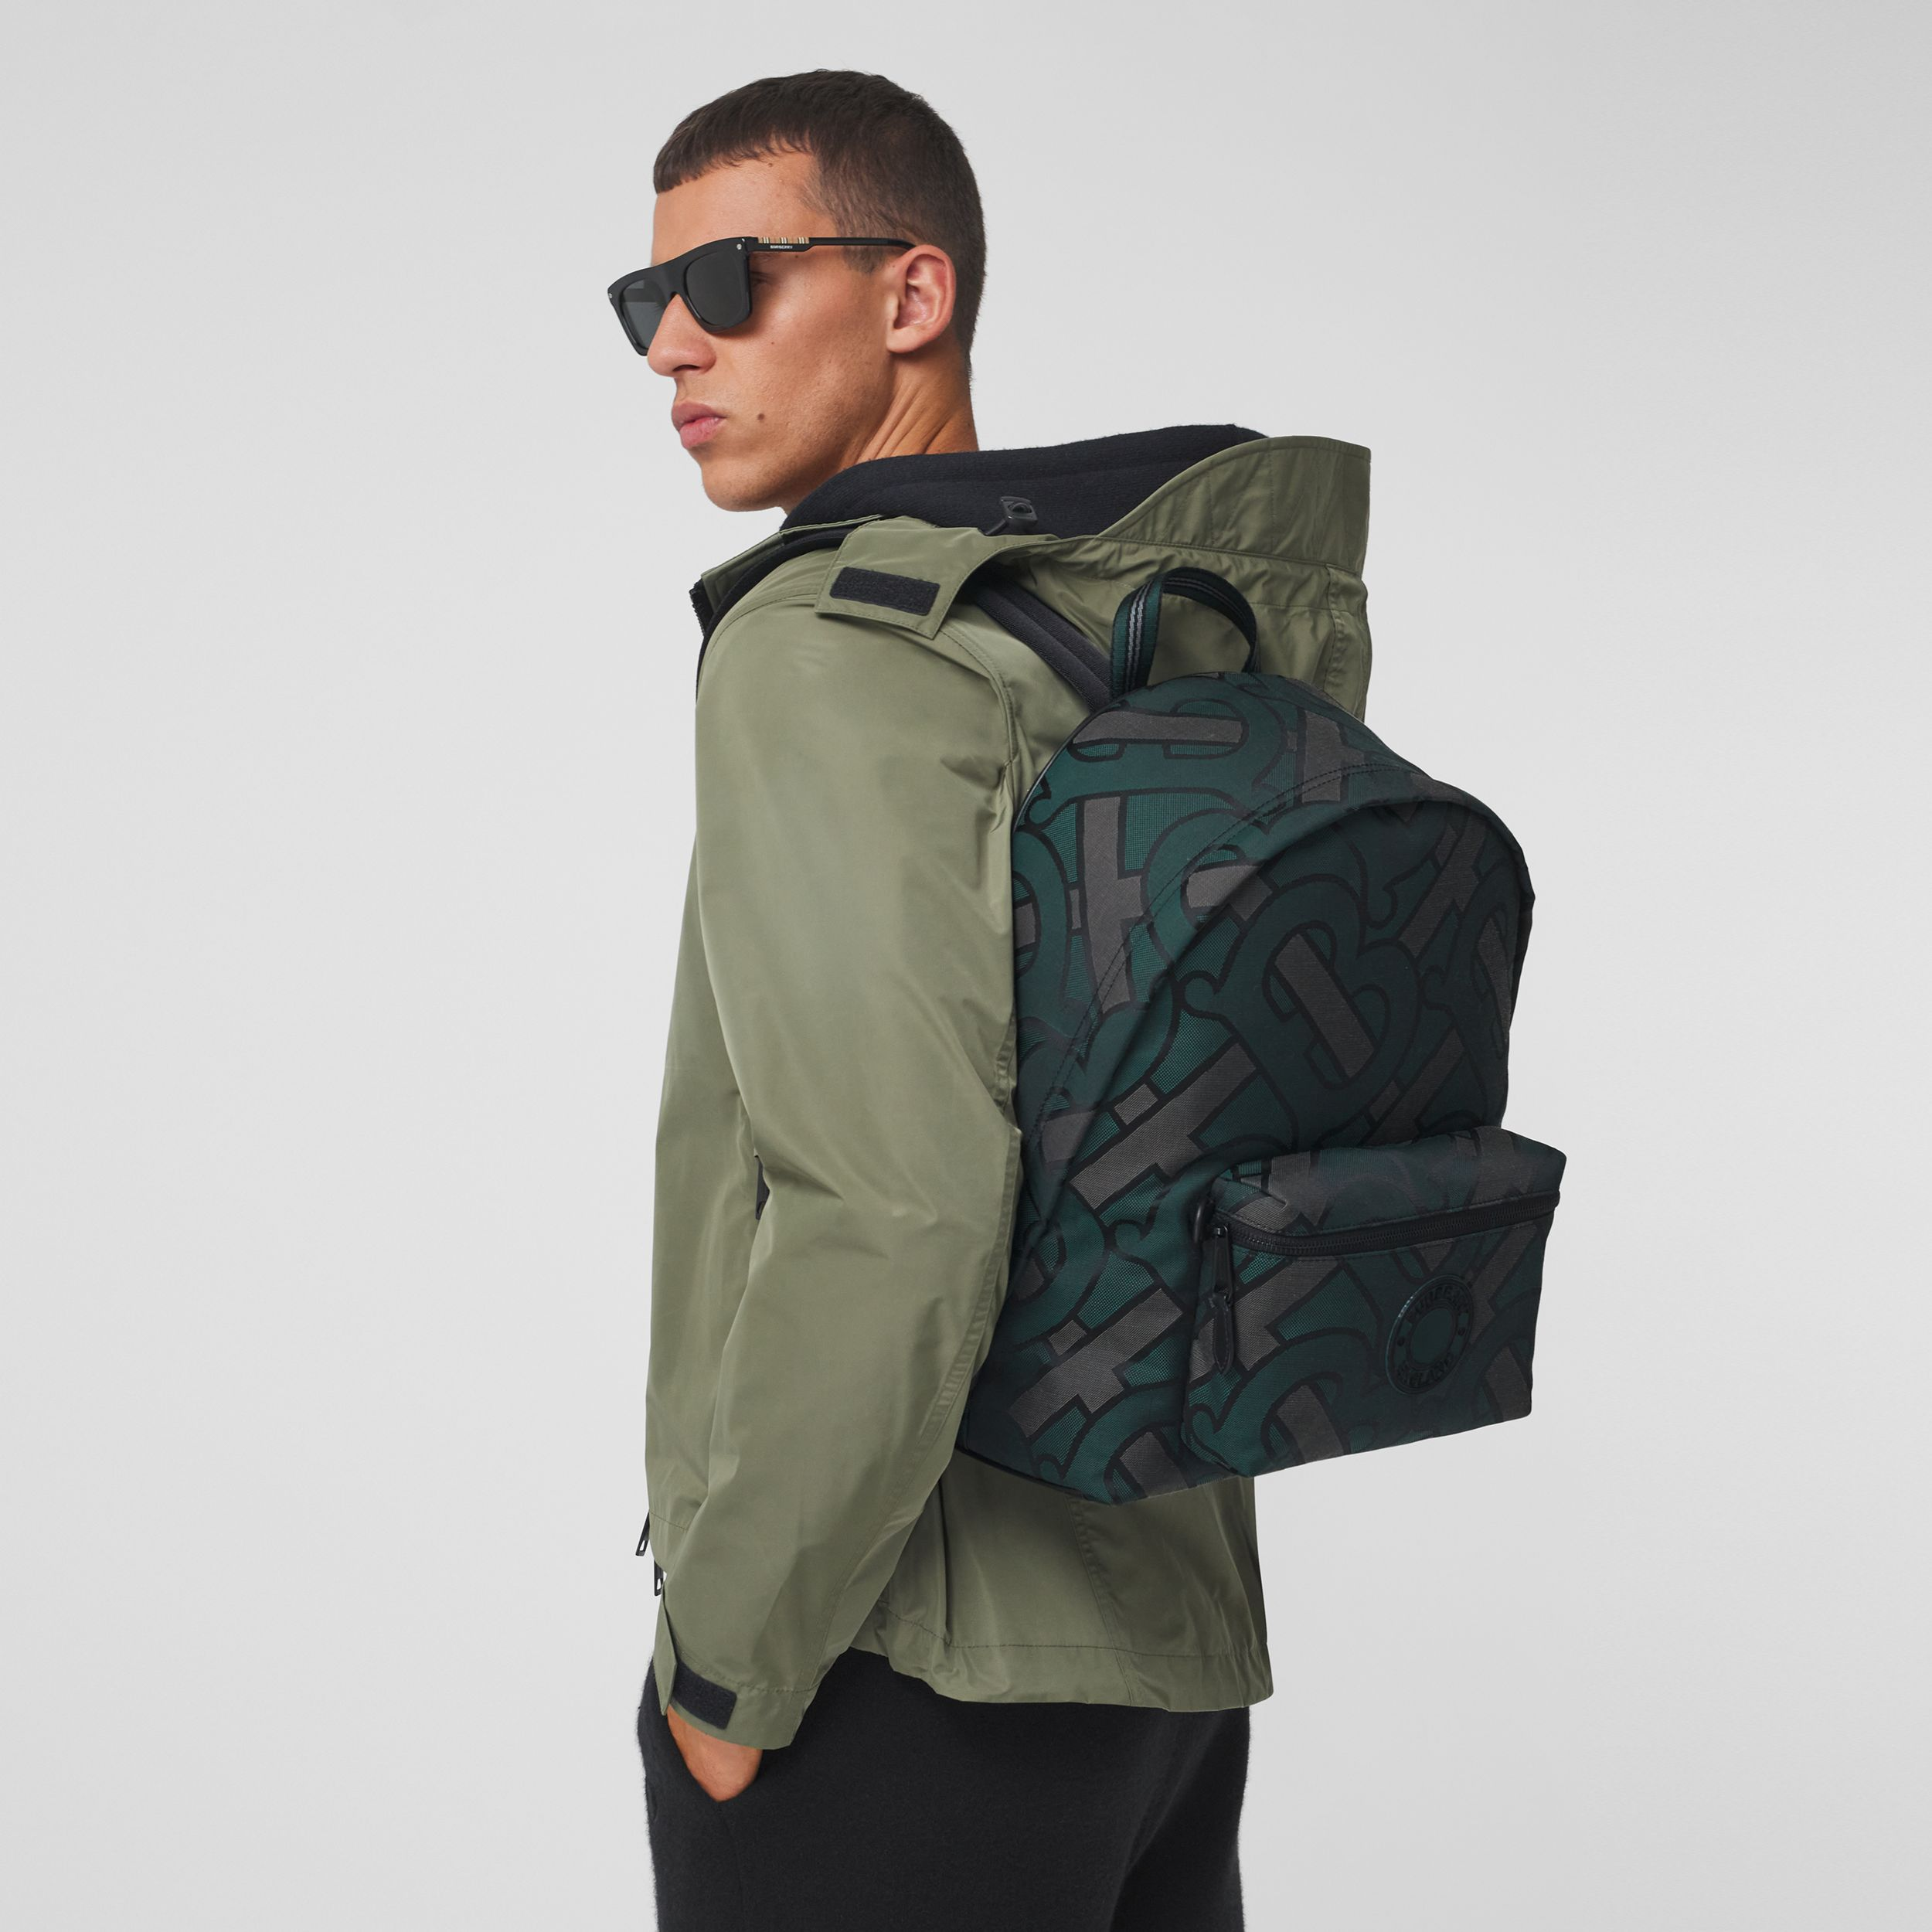 Monogram Recycled Polyester Jacquard Backpack in Forest Green - Men | Burberry - 3